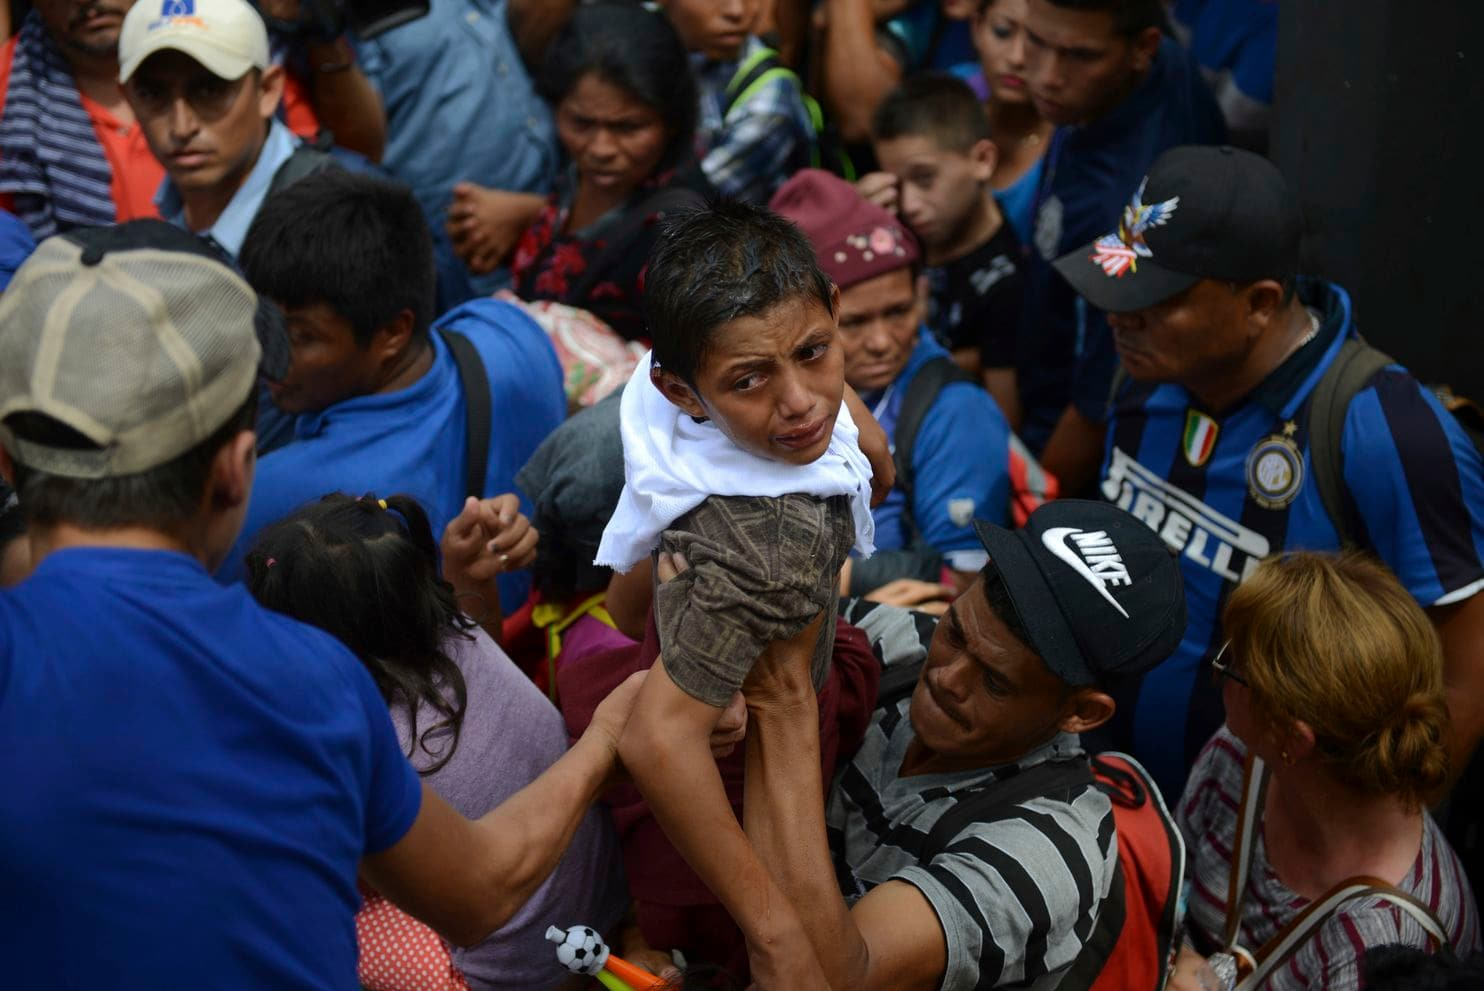 A boy cries as he is brought back down after an unsuccessful attempt to lift him over a border fence, in Tecun Uman, Guatemala, Friday, Oct. 19, 2018. Earlier in the day, waving Honduran flags and carrying umbrellas to protect against the sun, thousands of migrants arrived at the Guatemalan side of the border with Mexico, demanding they be allowed passage.